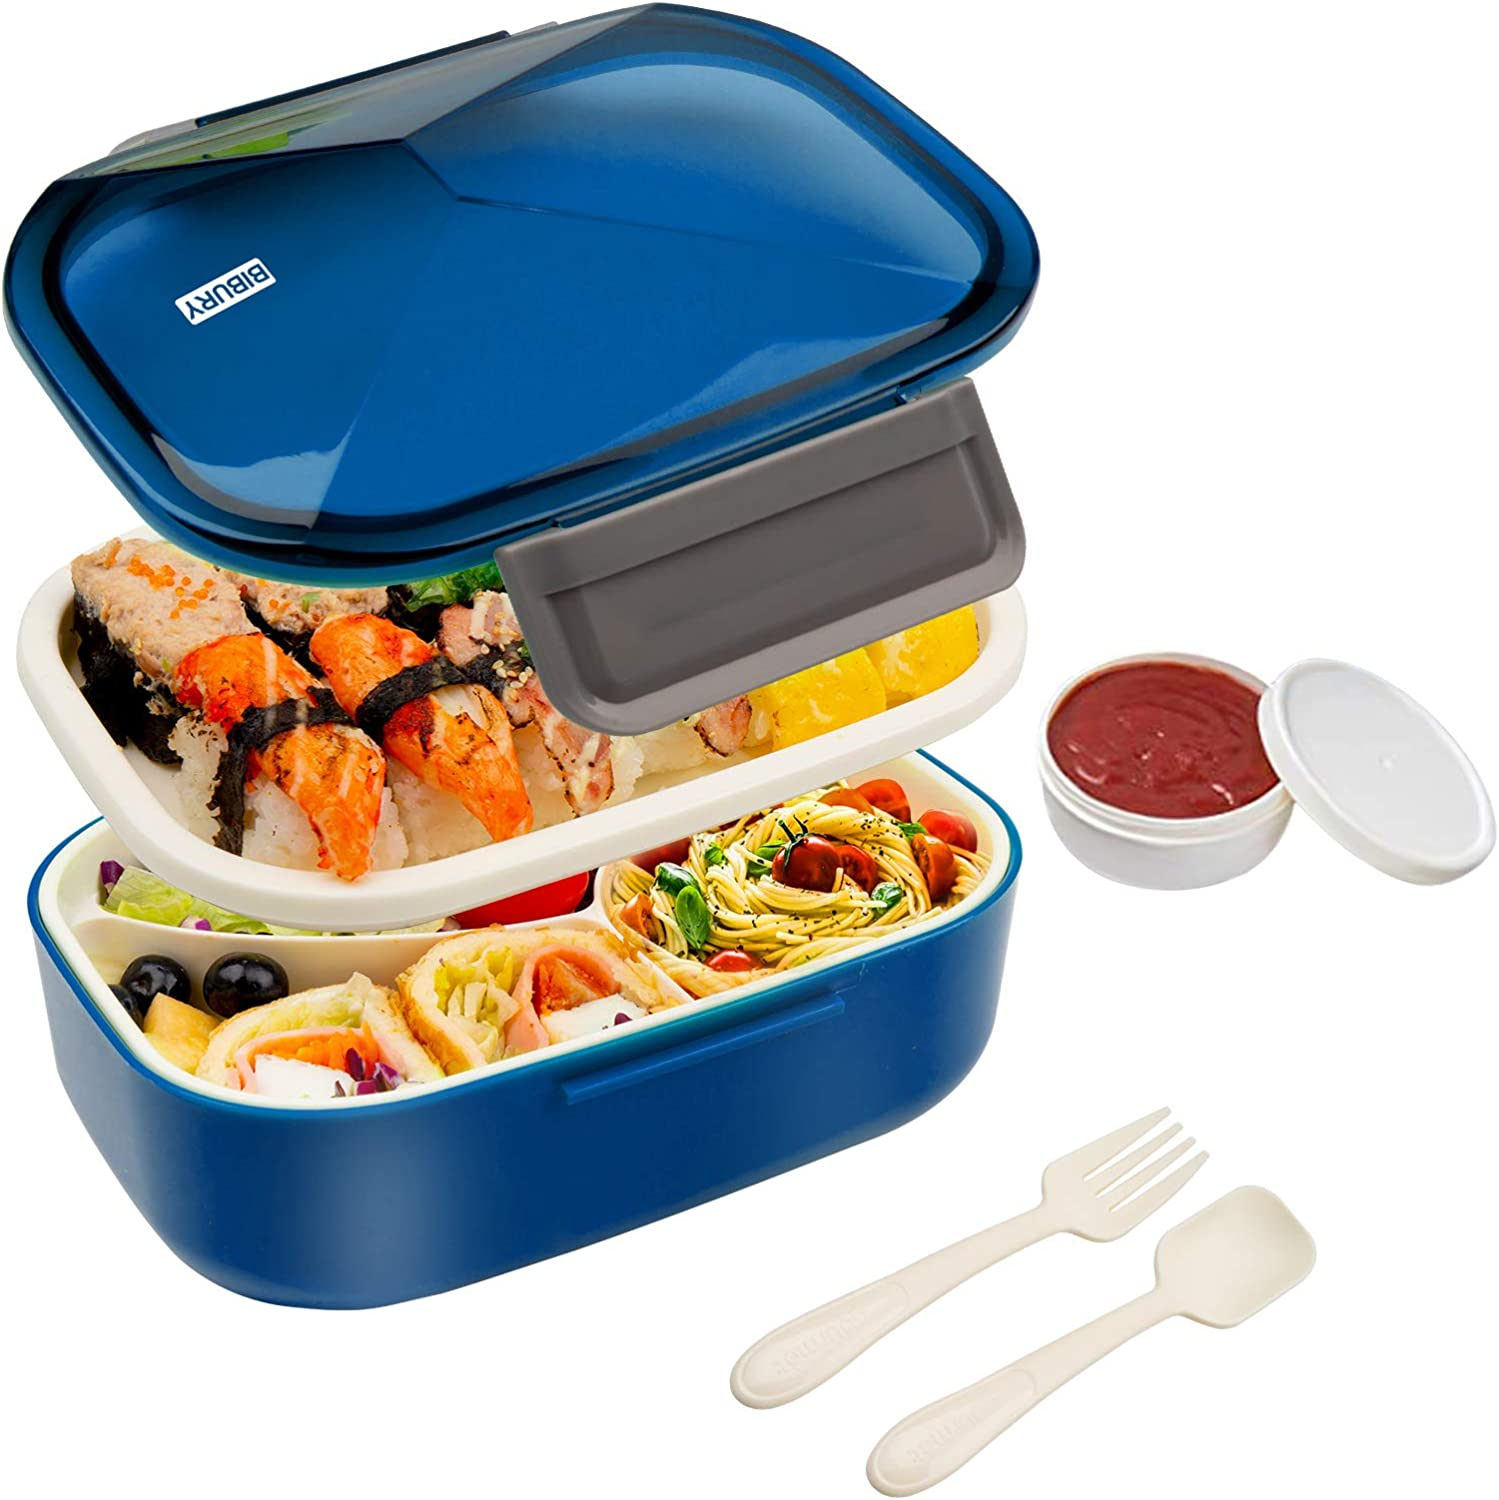 Bento Box, Upgraded Leakproof Lunch Box for Kids Adults, Food Container with 4 Compartments, Cutlery and Fruit/Yogurt Pot Set, Microwave and Dishwasher Safe Meal Prep Containers, 1.7L